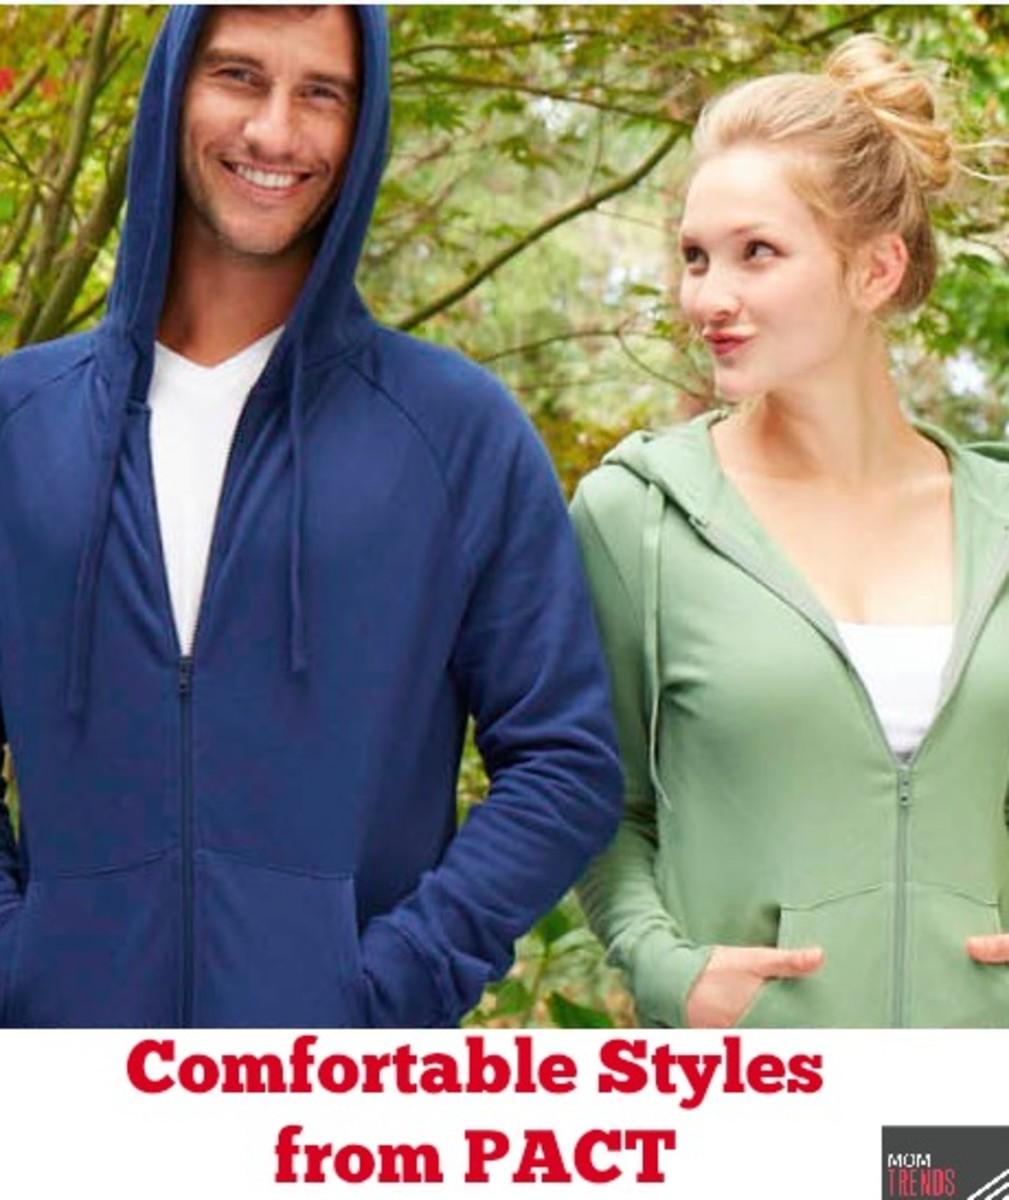 Comfortable Styles from PACT